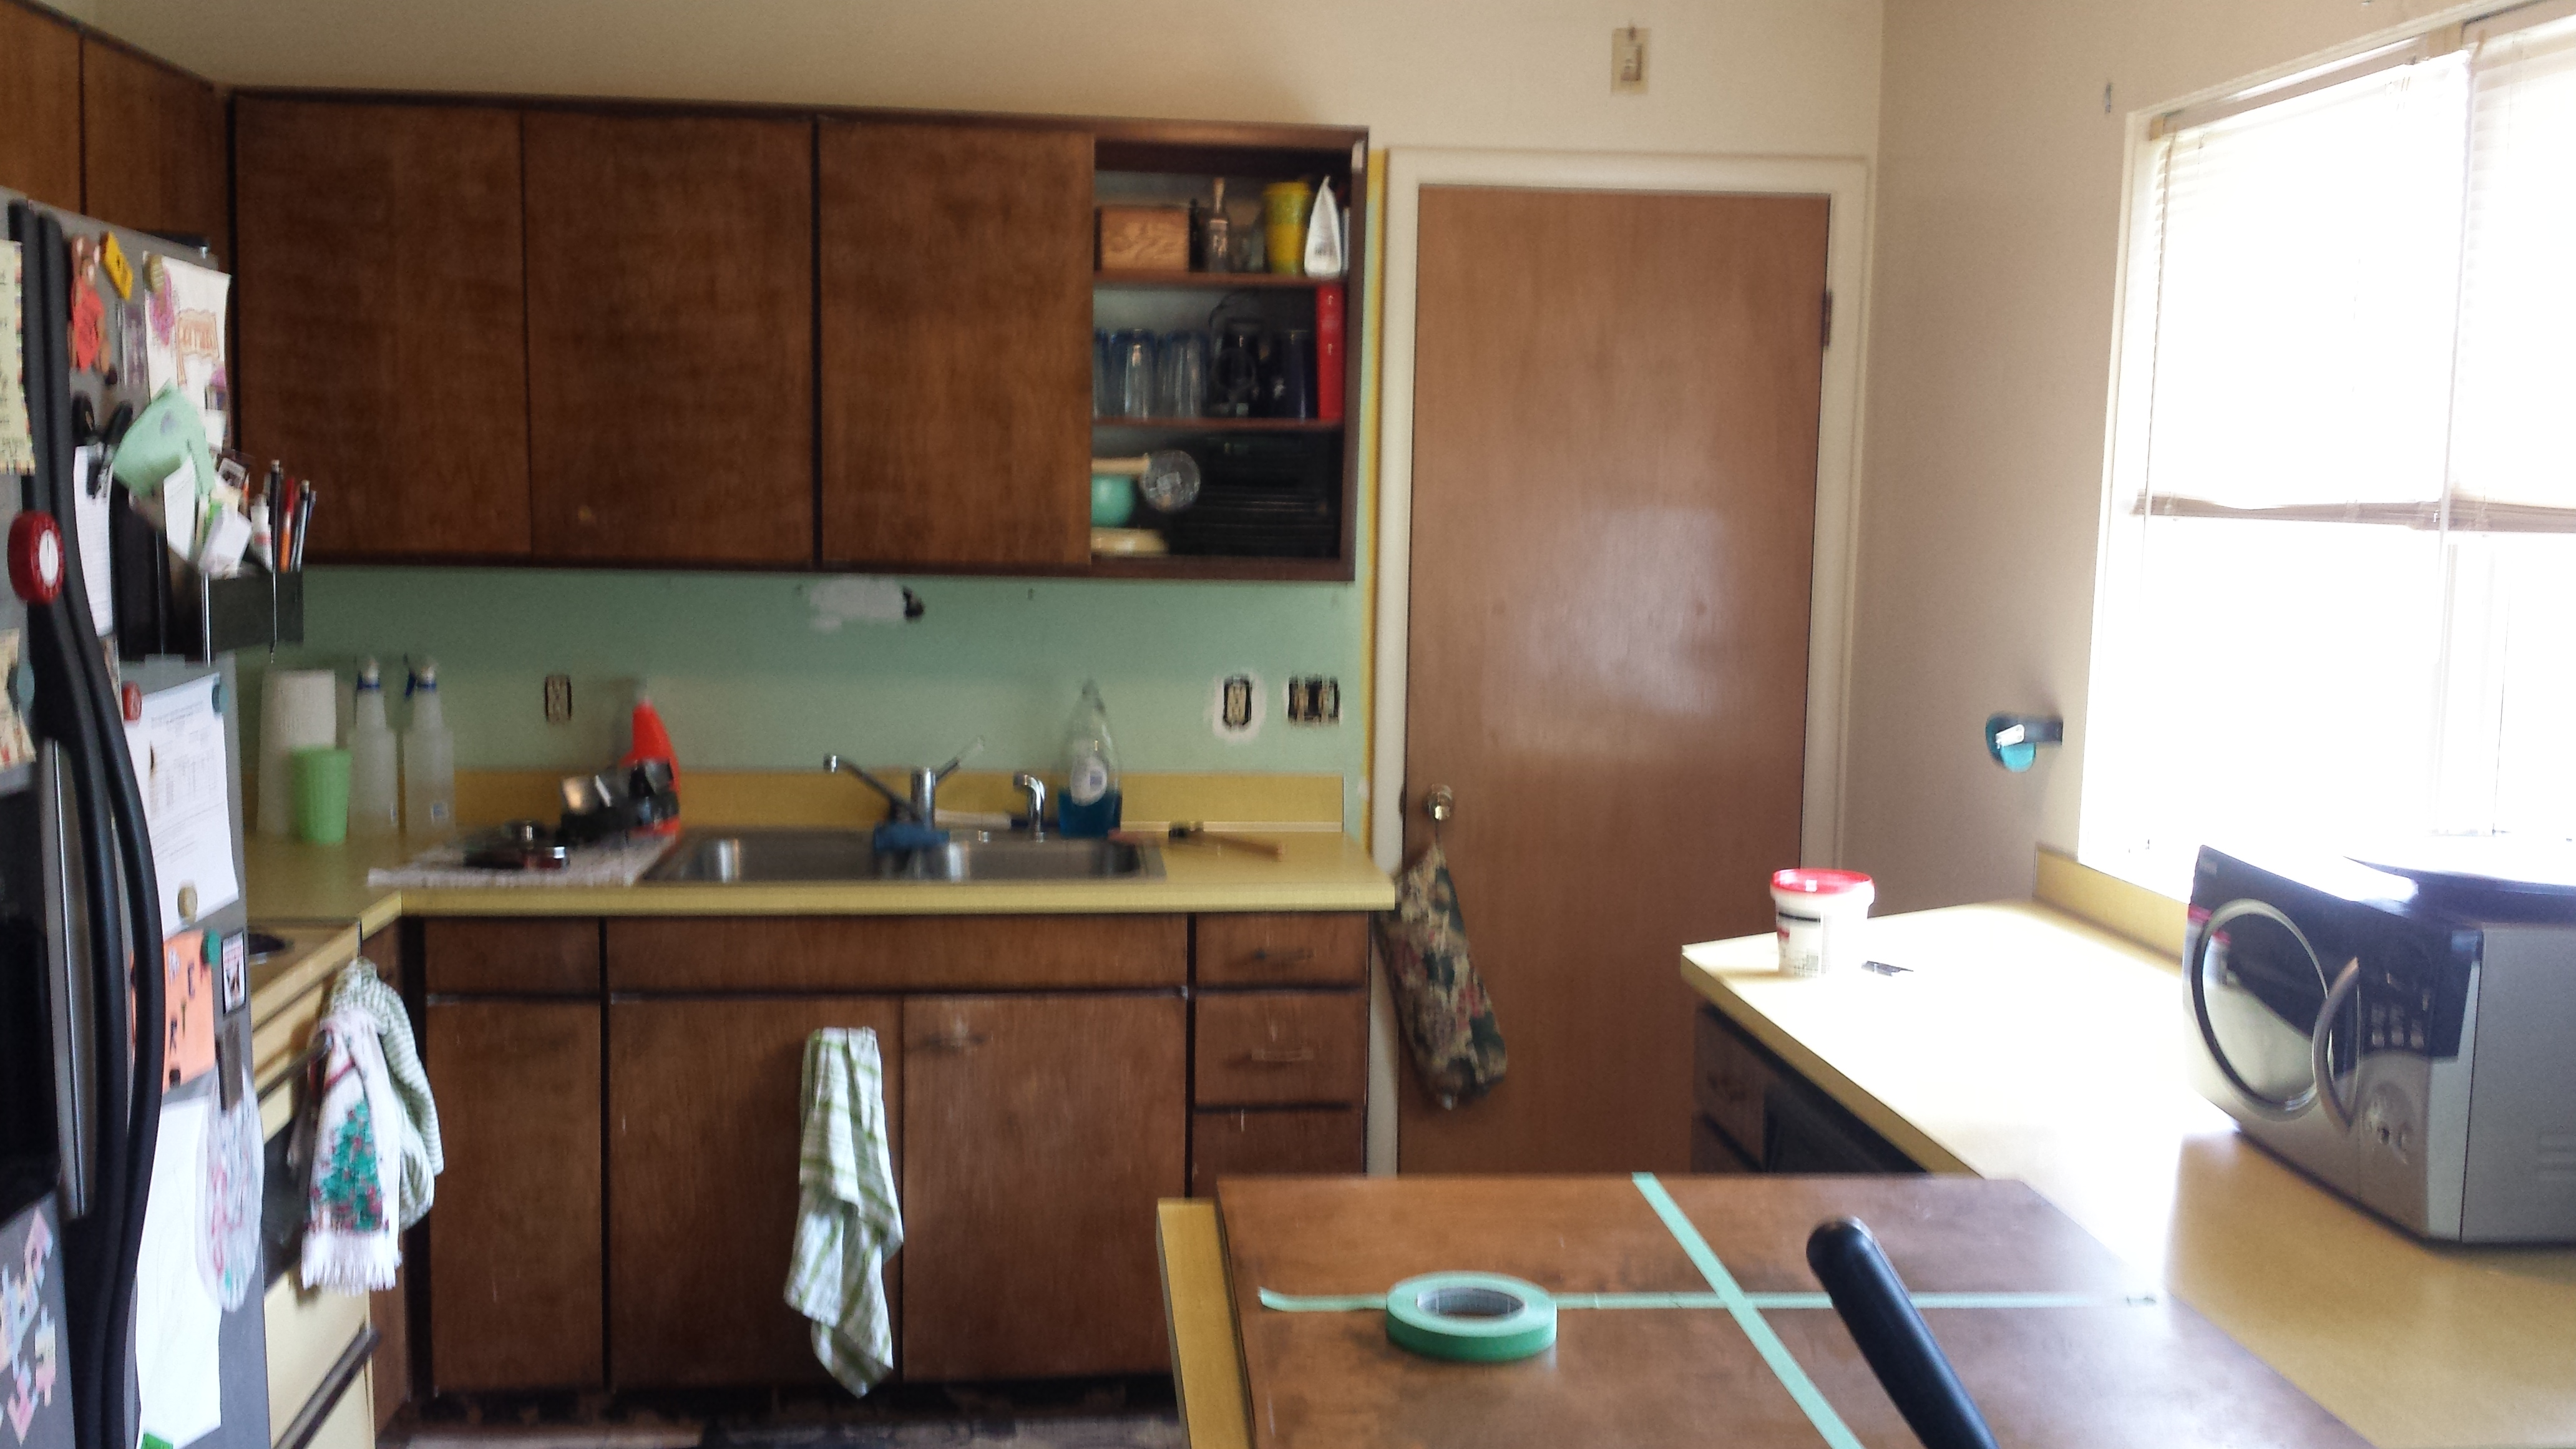 Repaint Kitchen Walls With Anti Fungicidal Paint In Magnolia